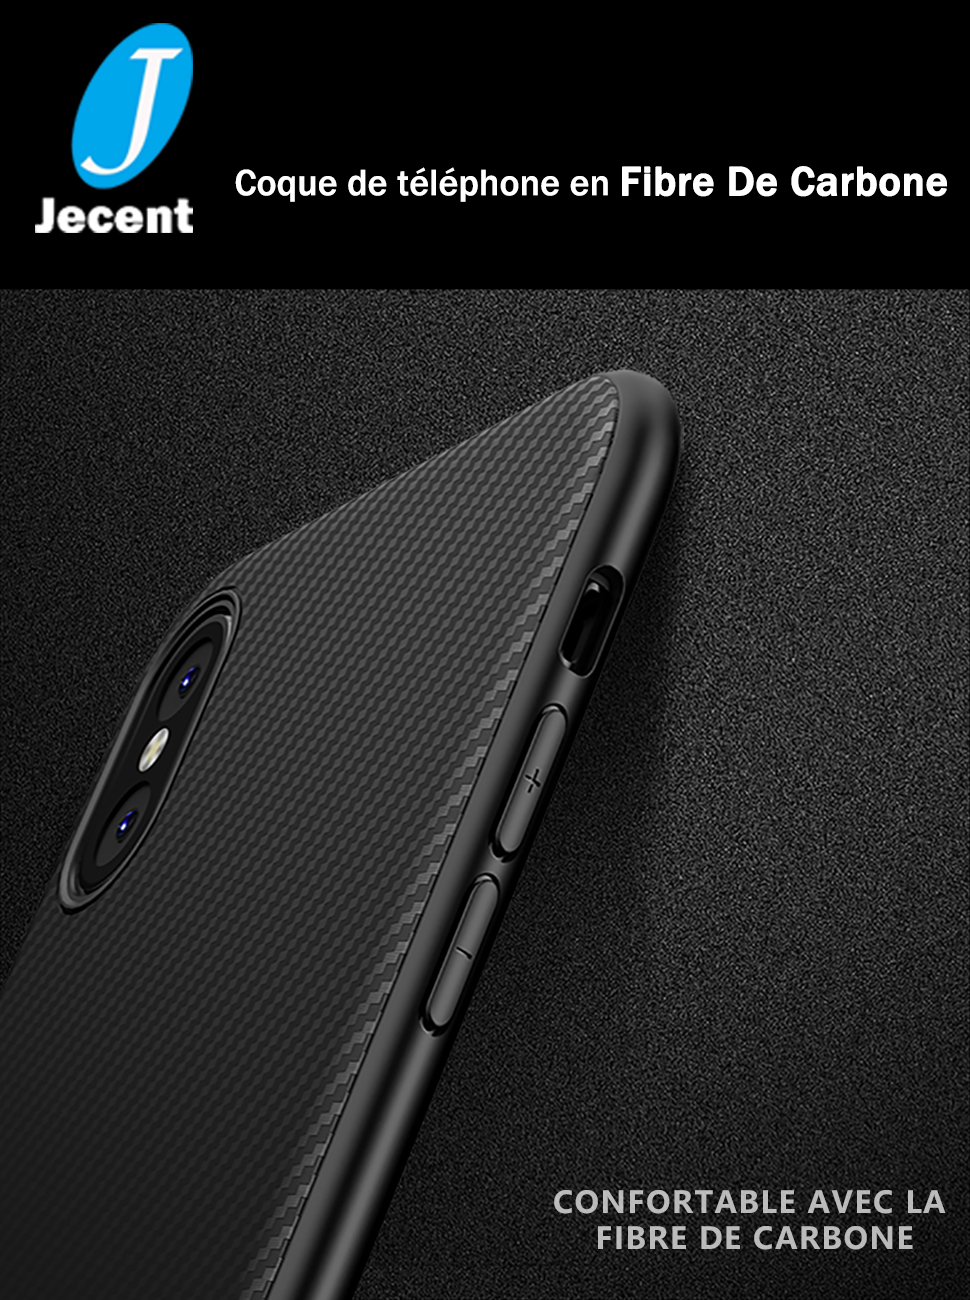 coque iphone x jecent